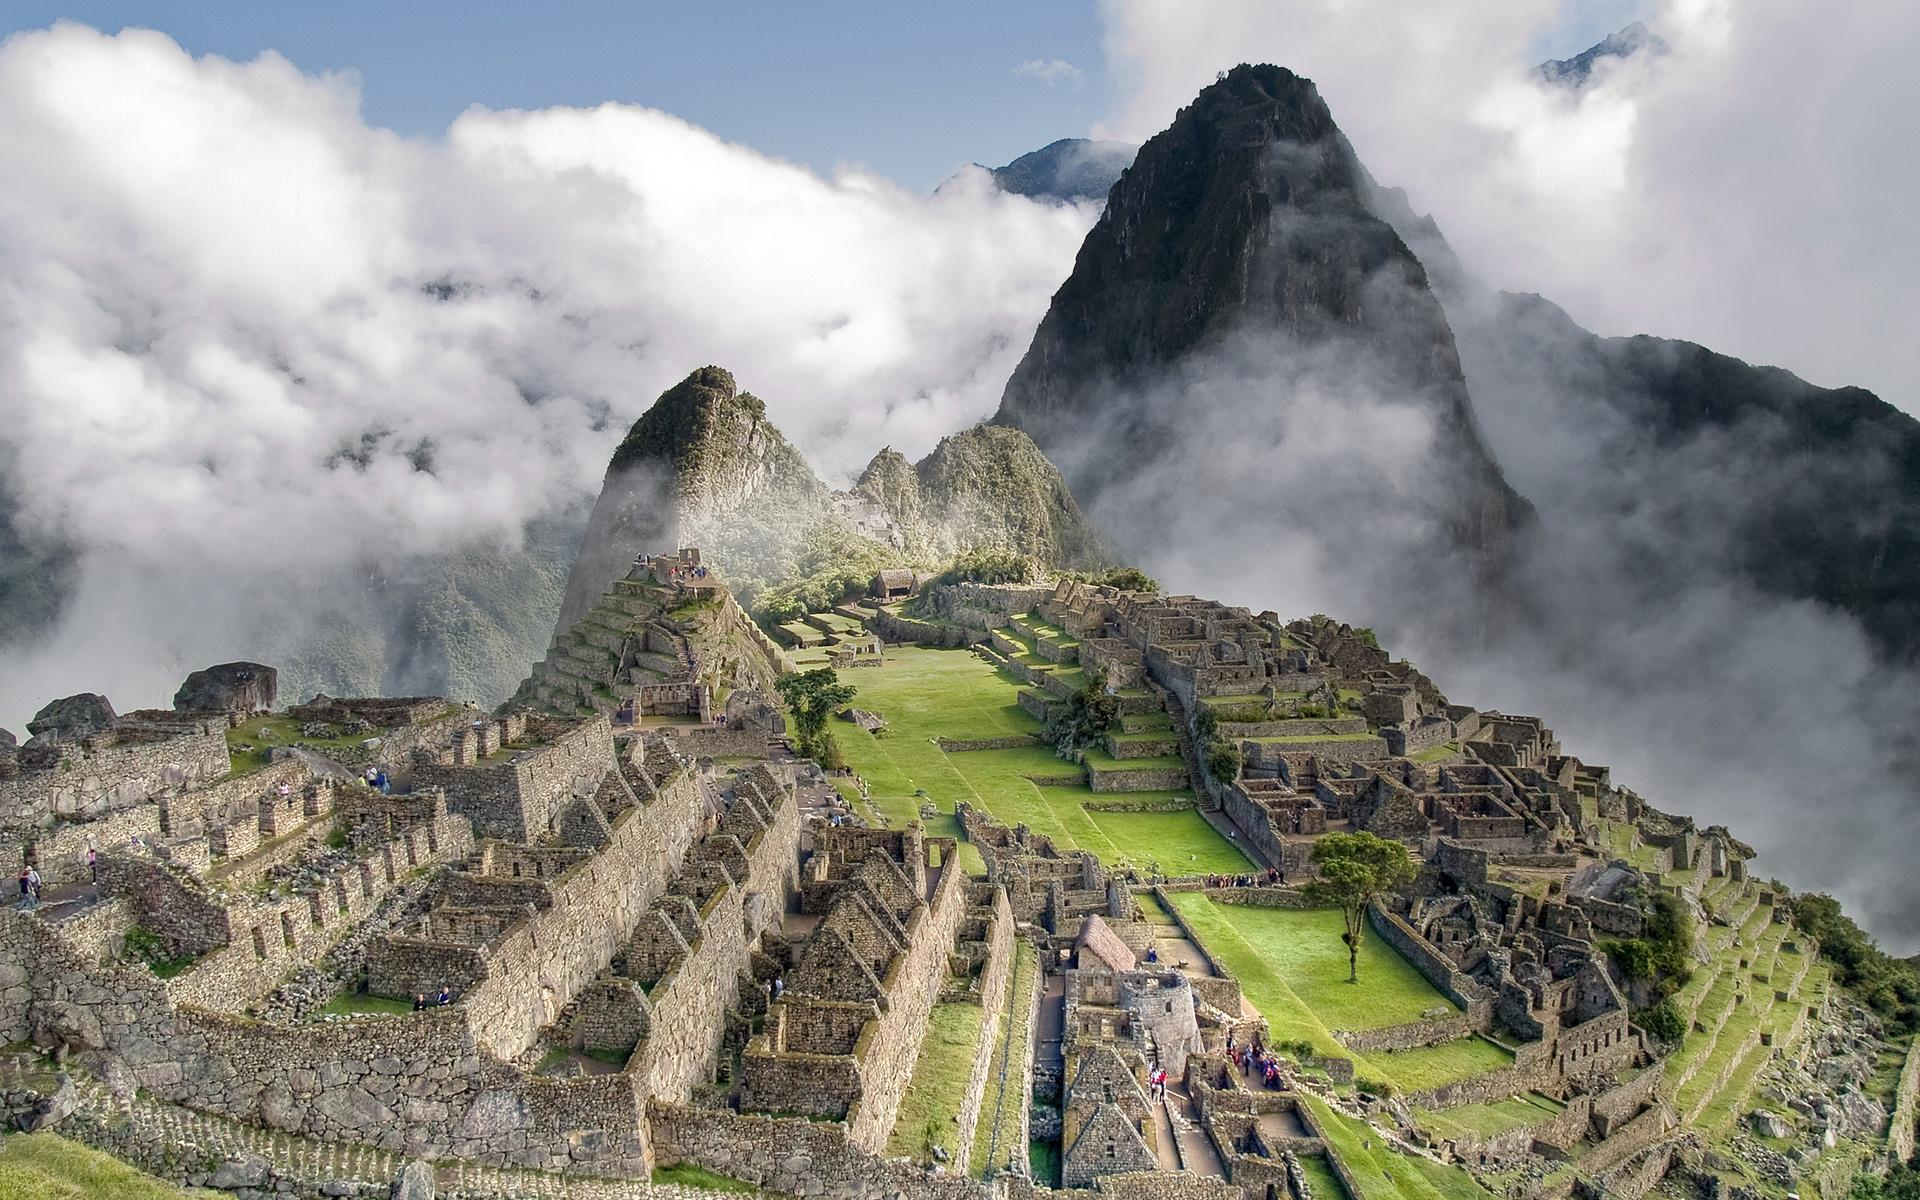 Top Rated FHDQ Machu Picchu Images - Wonderful Collection